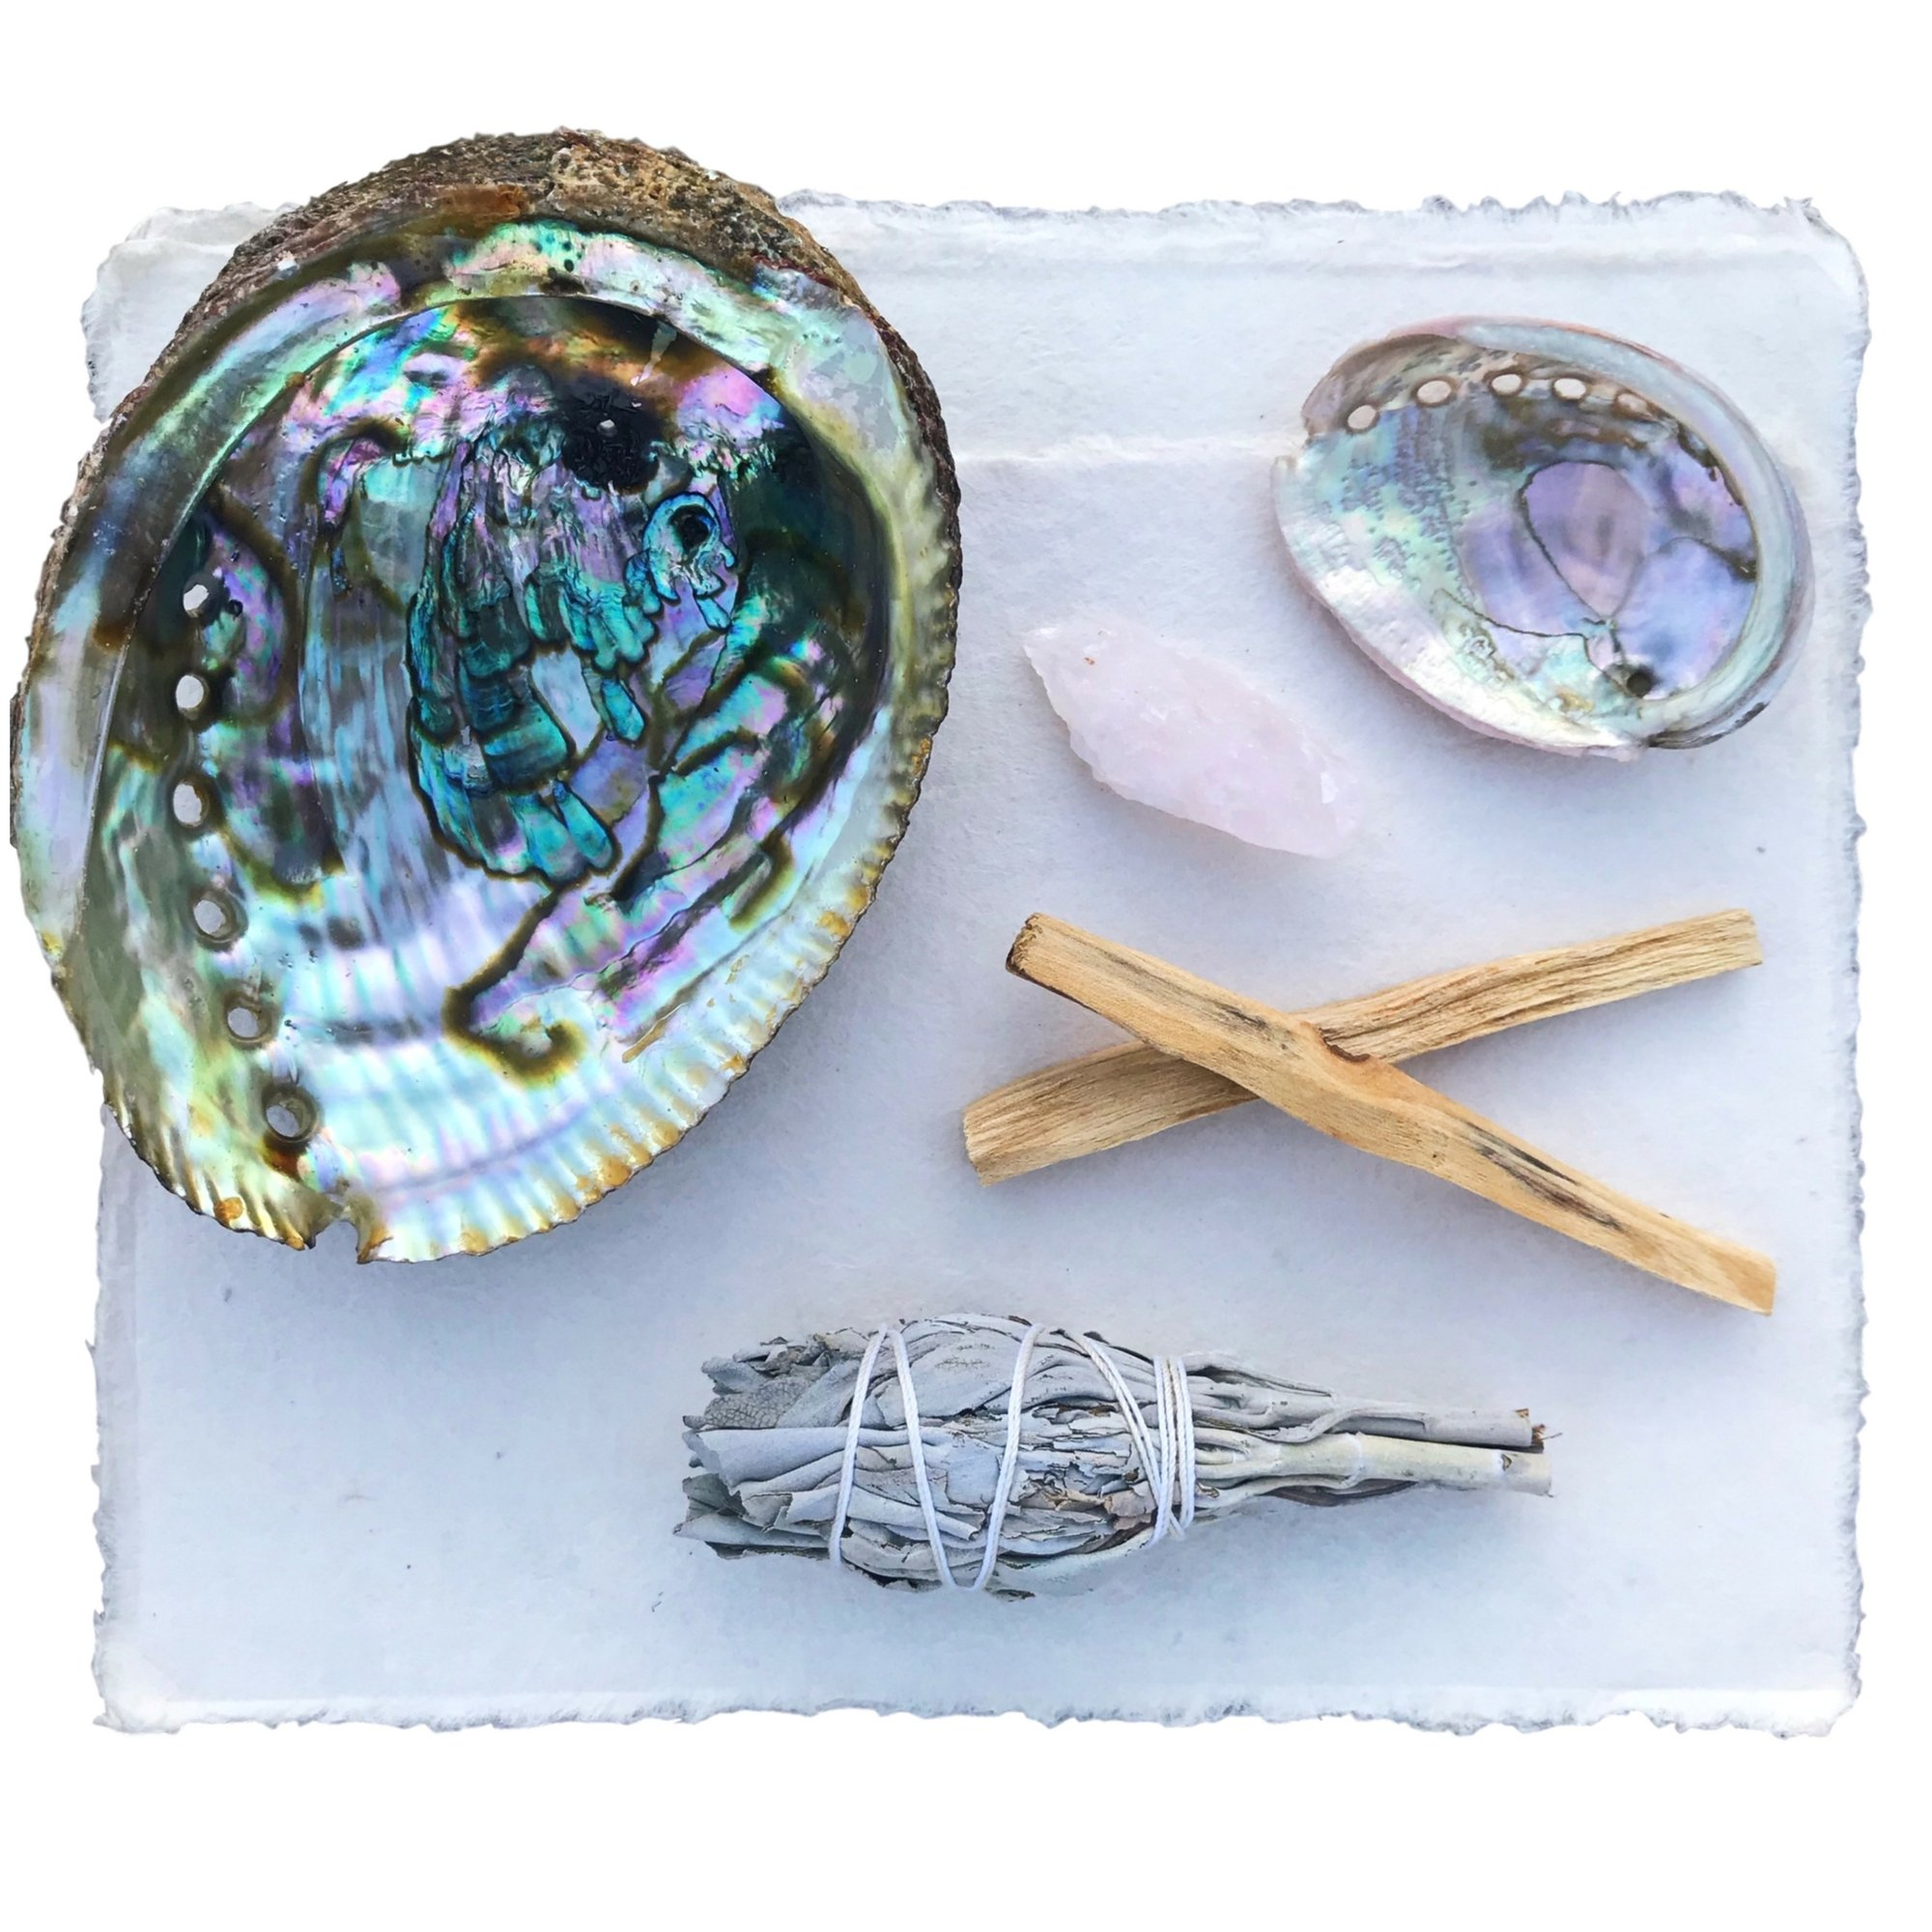 Maha Living Smudging Kit w/Abalone Shell (Large), Palo Santo, White Sage Smudge Stick, Rose Quartz Healing Crystal Plus How to Guide for Cleansing Your Home (Abalone Shell)